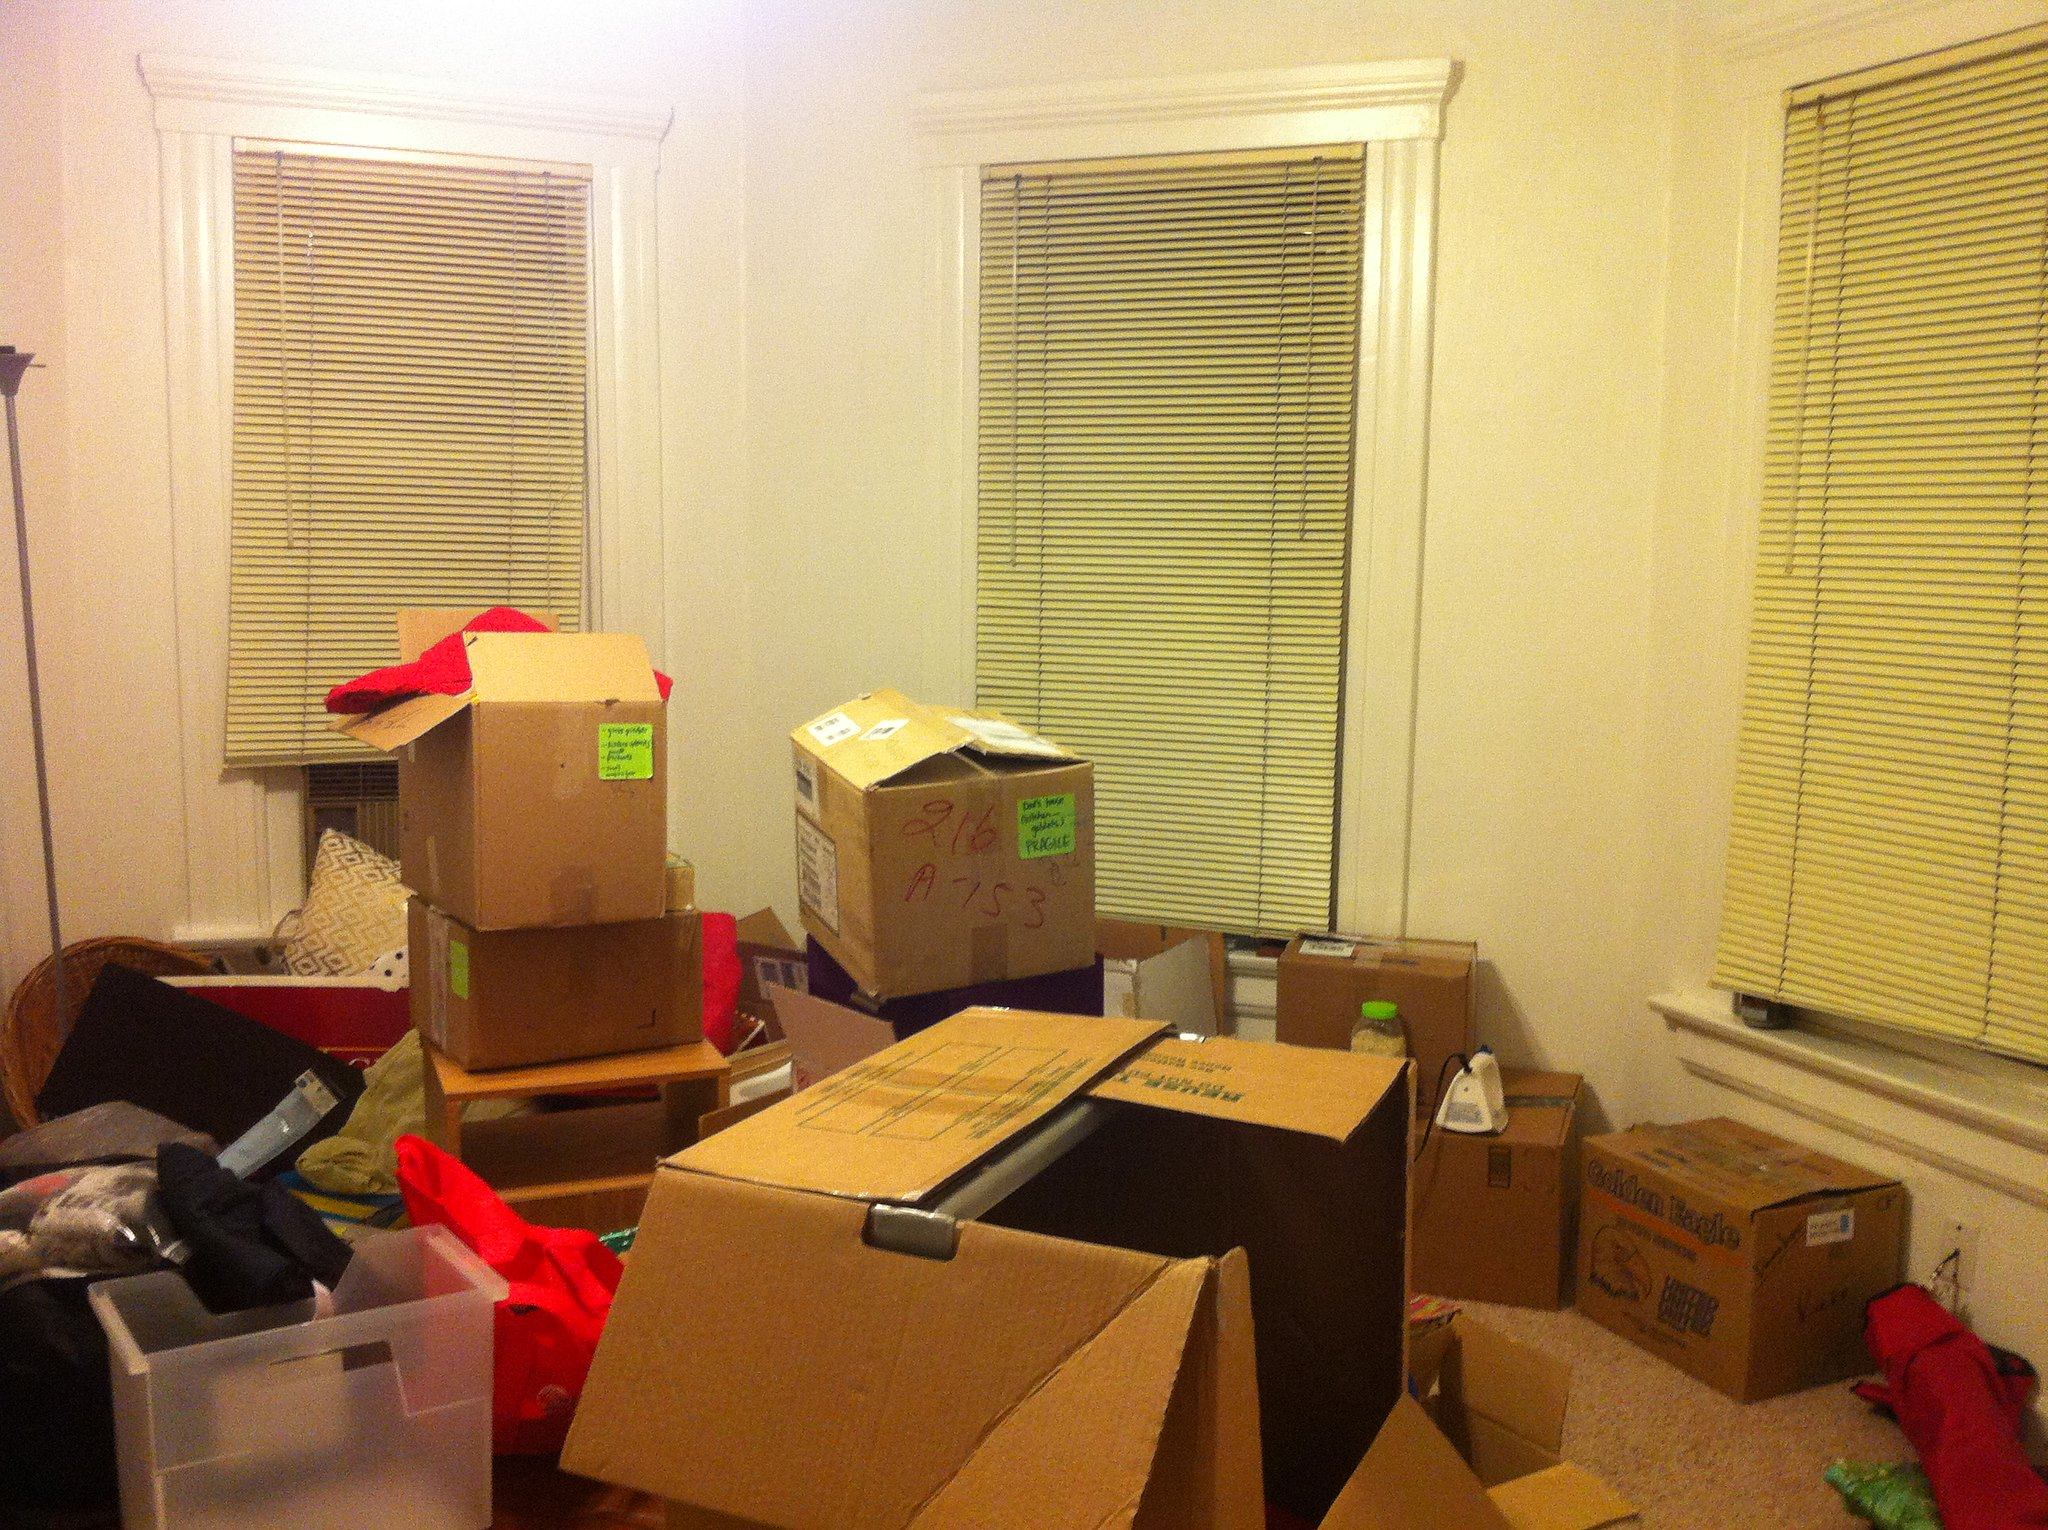 so many boxes!